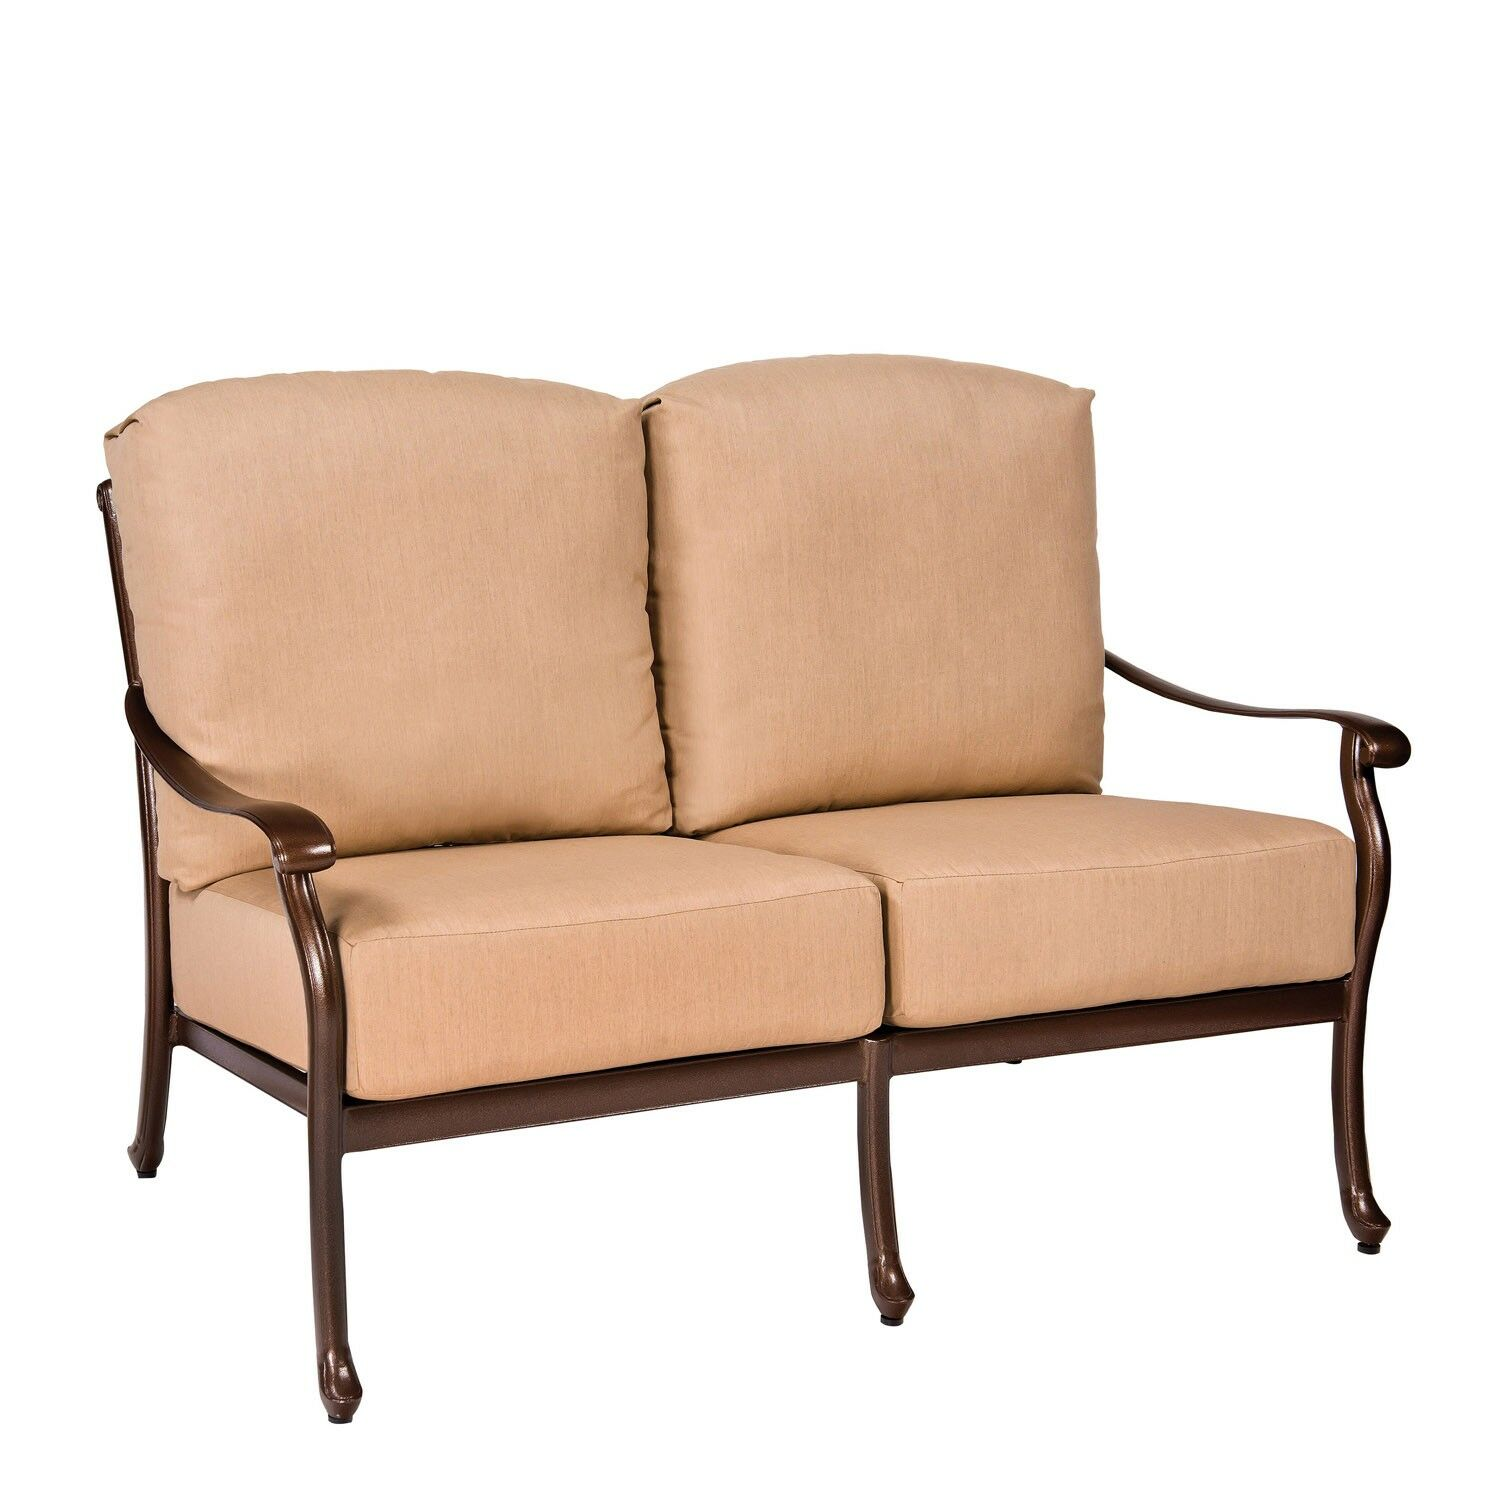 Casa Loveseat with Cushions Fabric: Canvas Chestnut